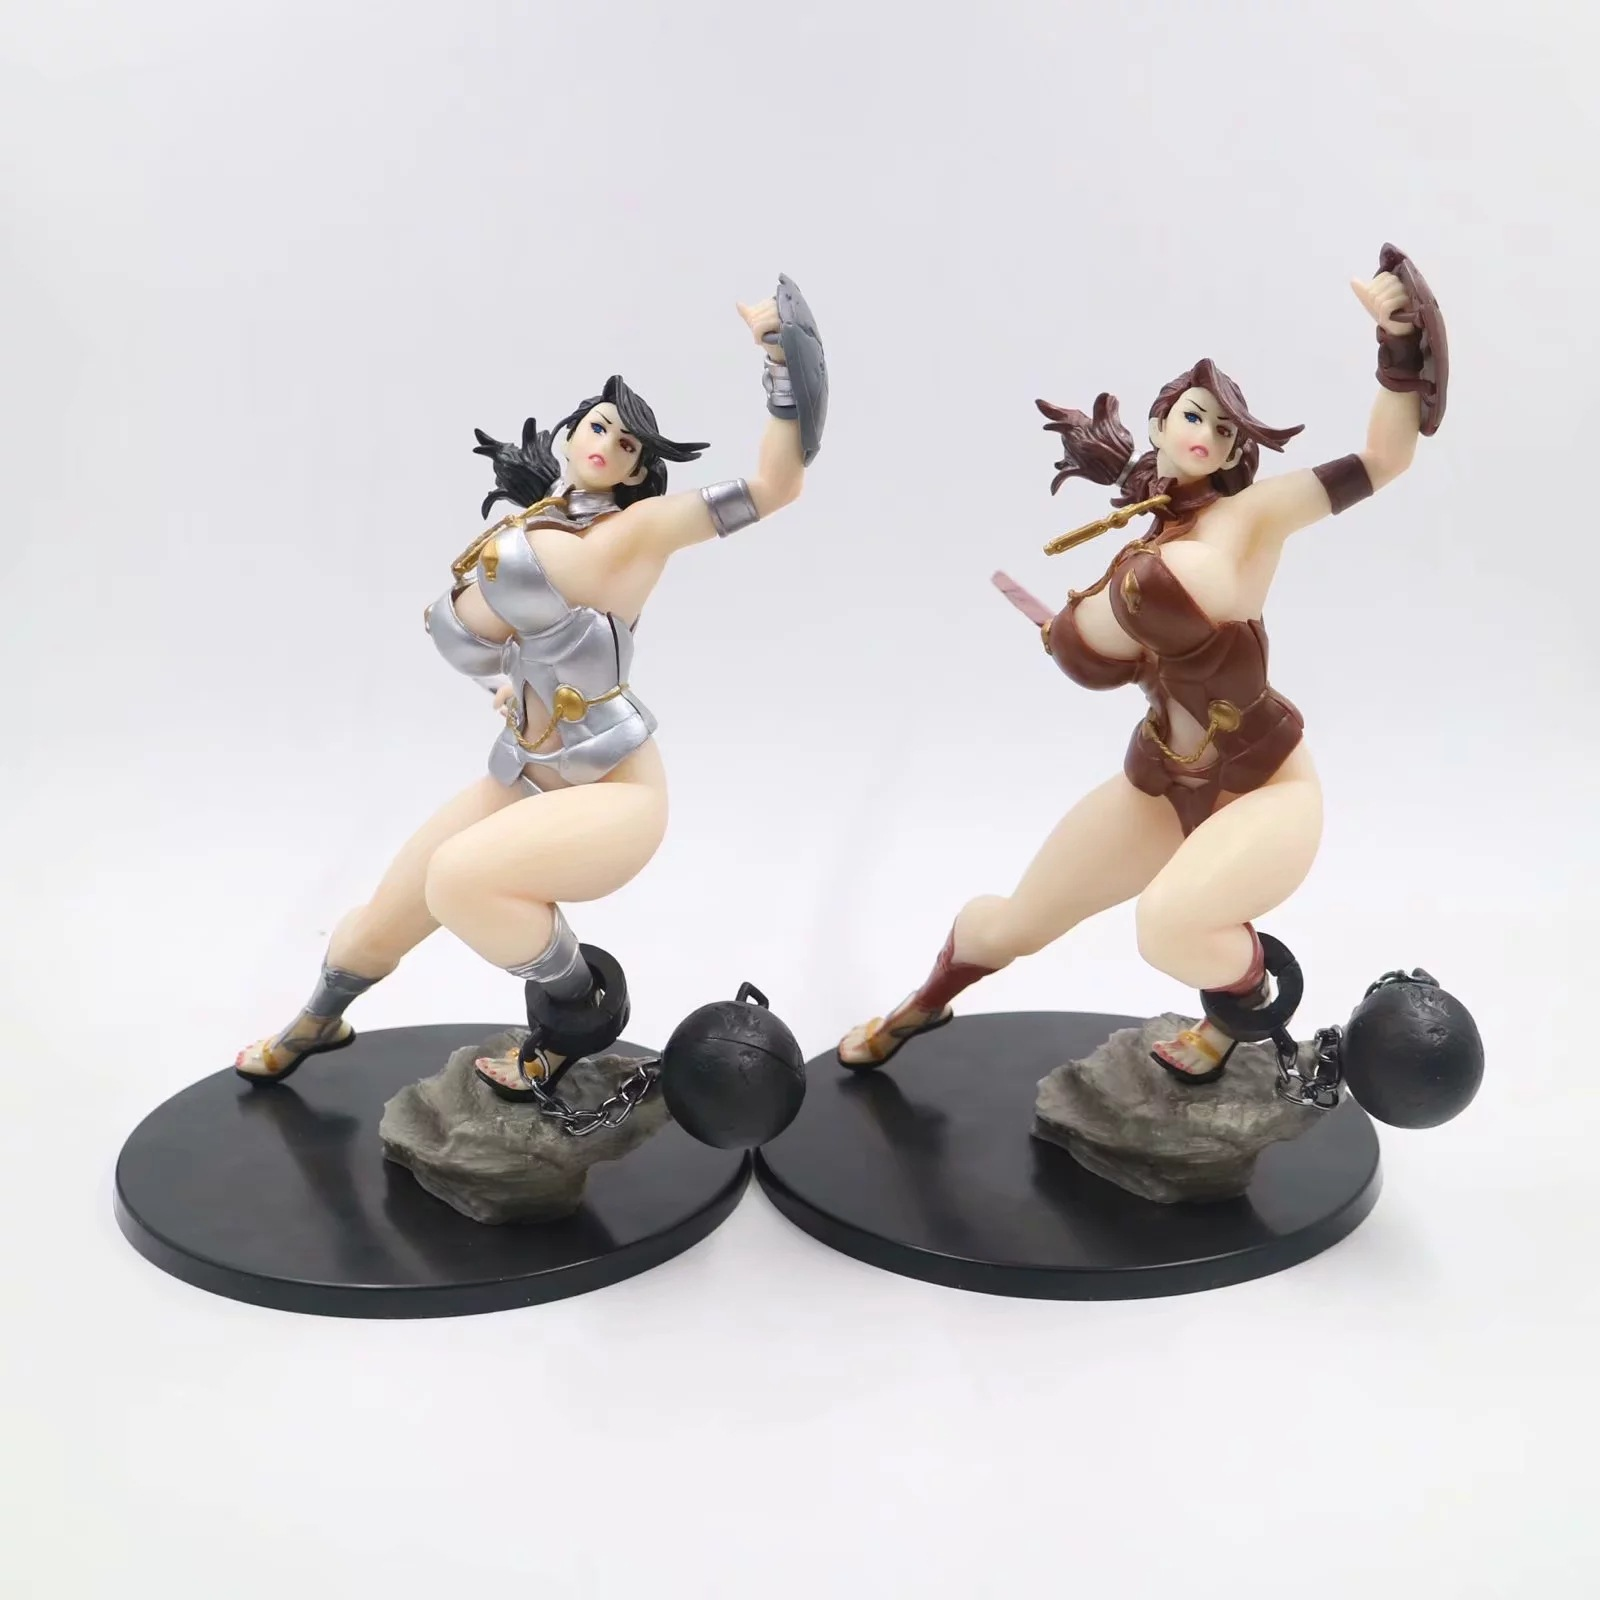 Japanese Anime Queen's Blade Q-six Branwen soft <font><b>body</b></font> <font><b>Action</b></font> <font><b>Figure</b></font> PVC <font><b>figures</b></font> Toys image